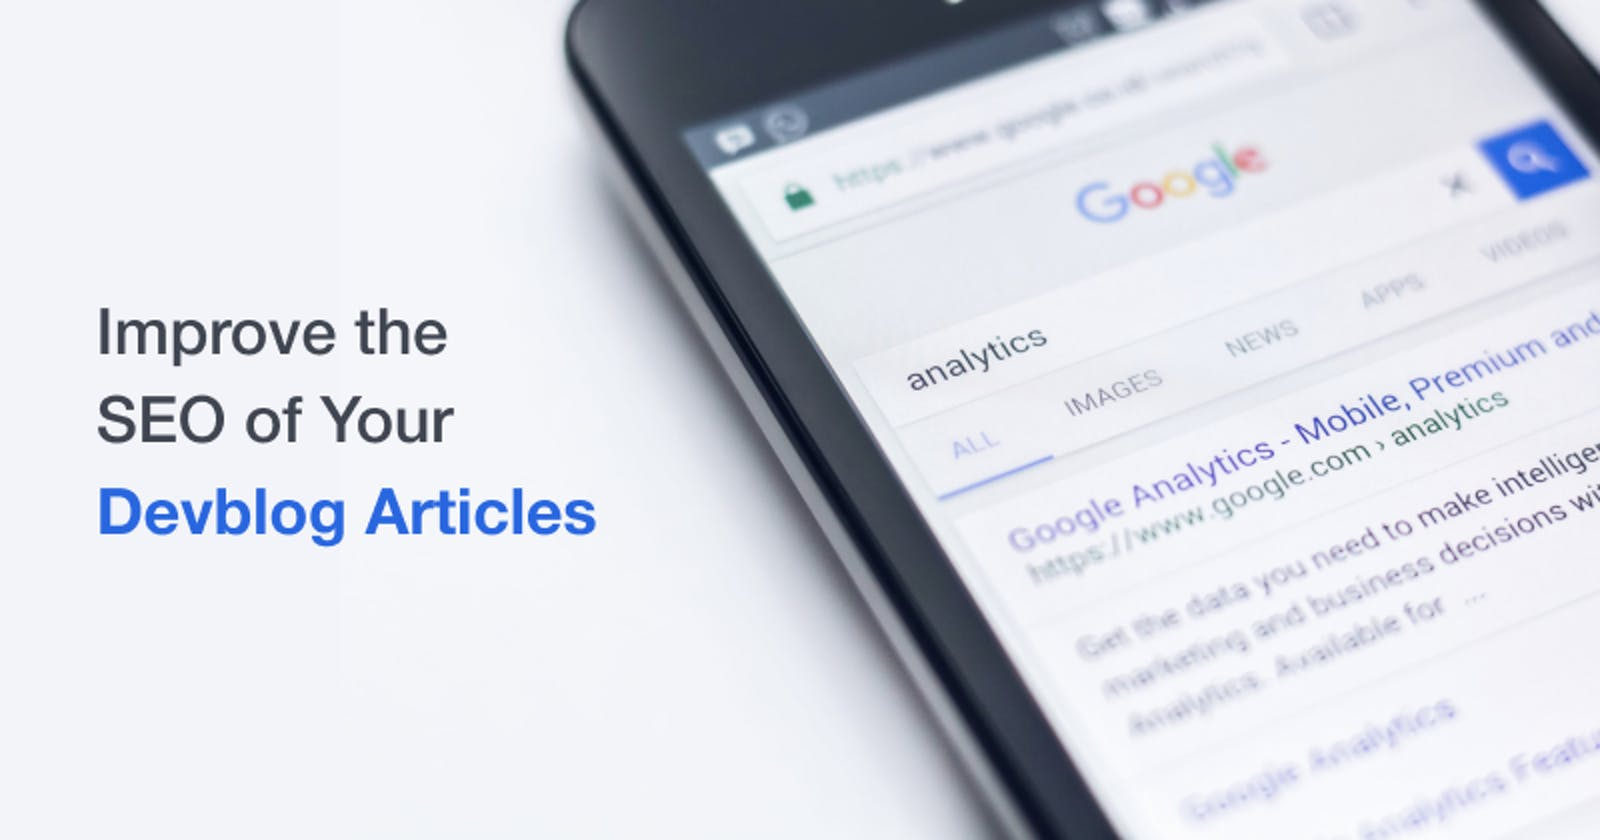 How to Improve the SEO of Your Devblog Articles